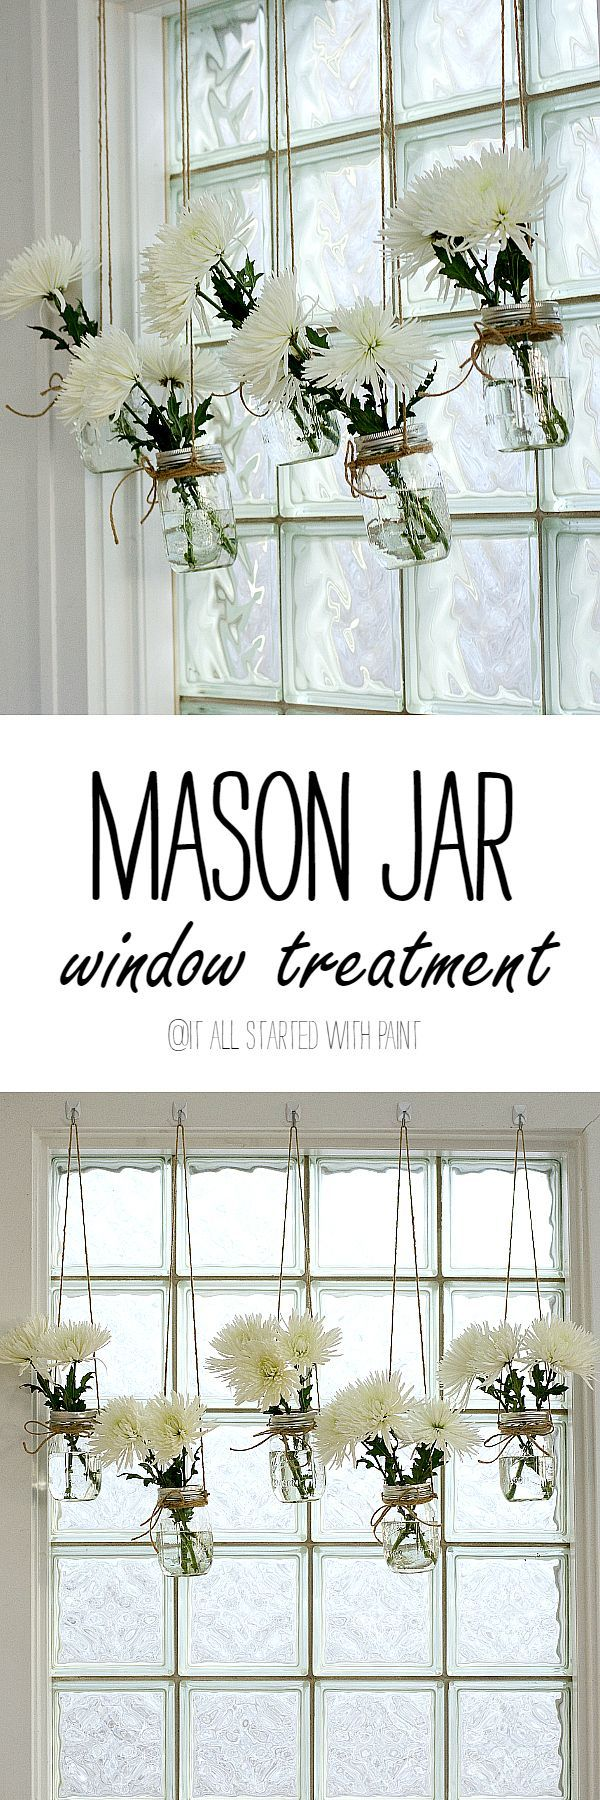 Kitchen window treatment ideas 2013 - Window Treatment Ideas Spring Decorating Ideas Mason Jar Craft Ideas Mason Jar Window